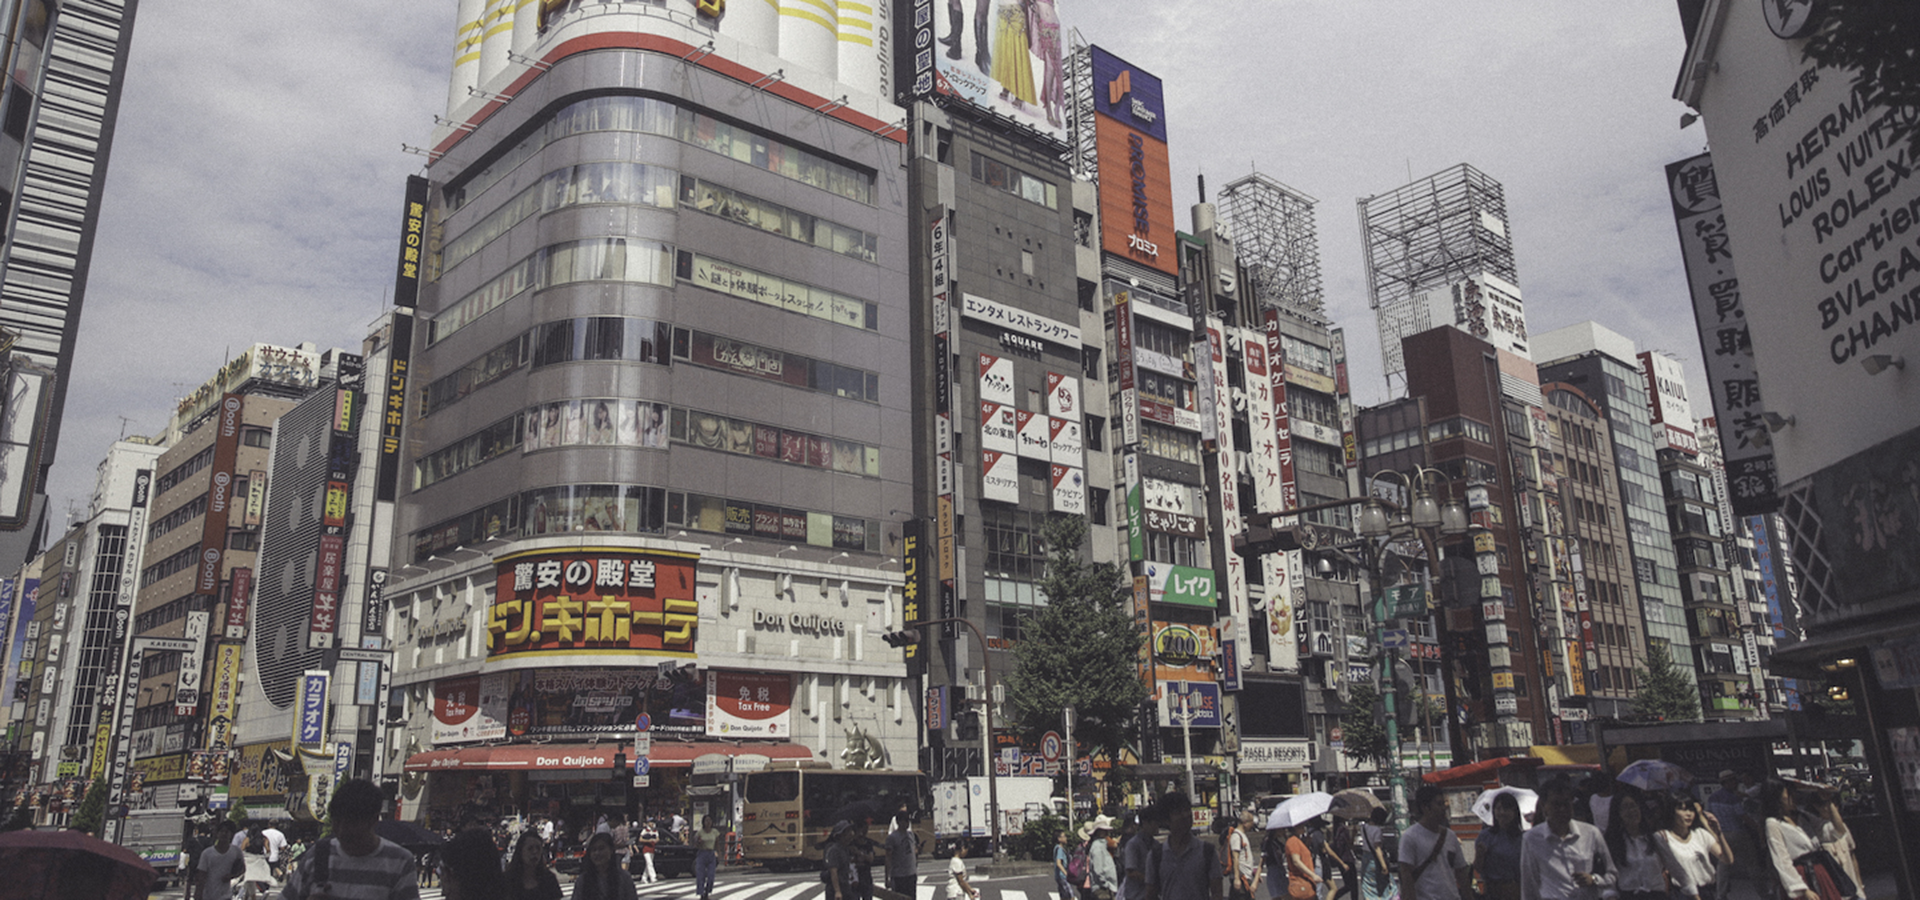 EXPLORING OLD TOKYO WITH THE NEW URBAN SERIES